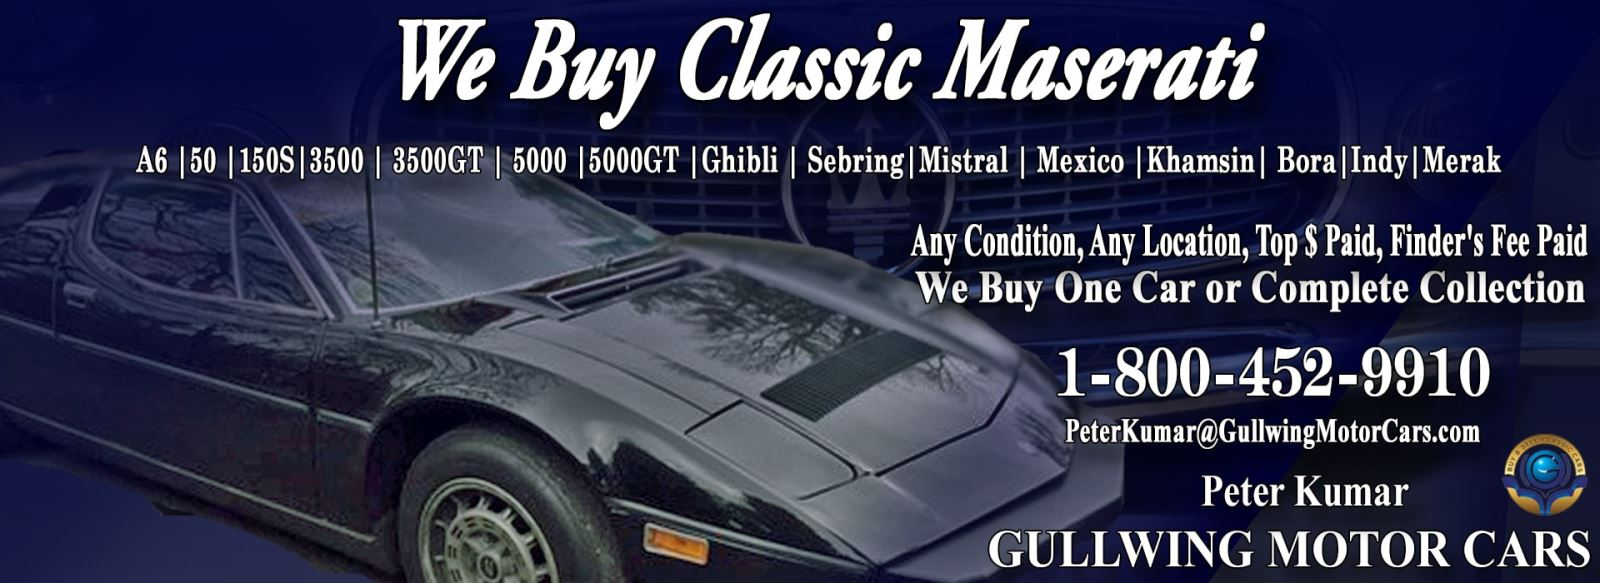 Classic Maserati for sale, we buy vintage Maserati. Call Peter Kumar. Gullwing Motor